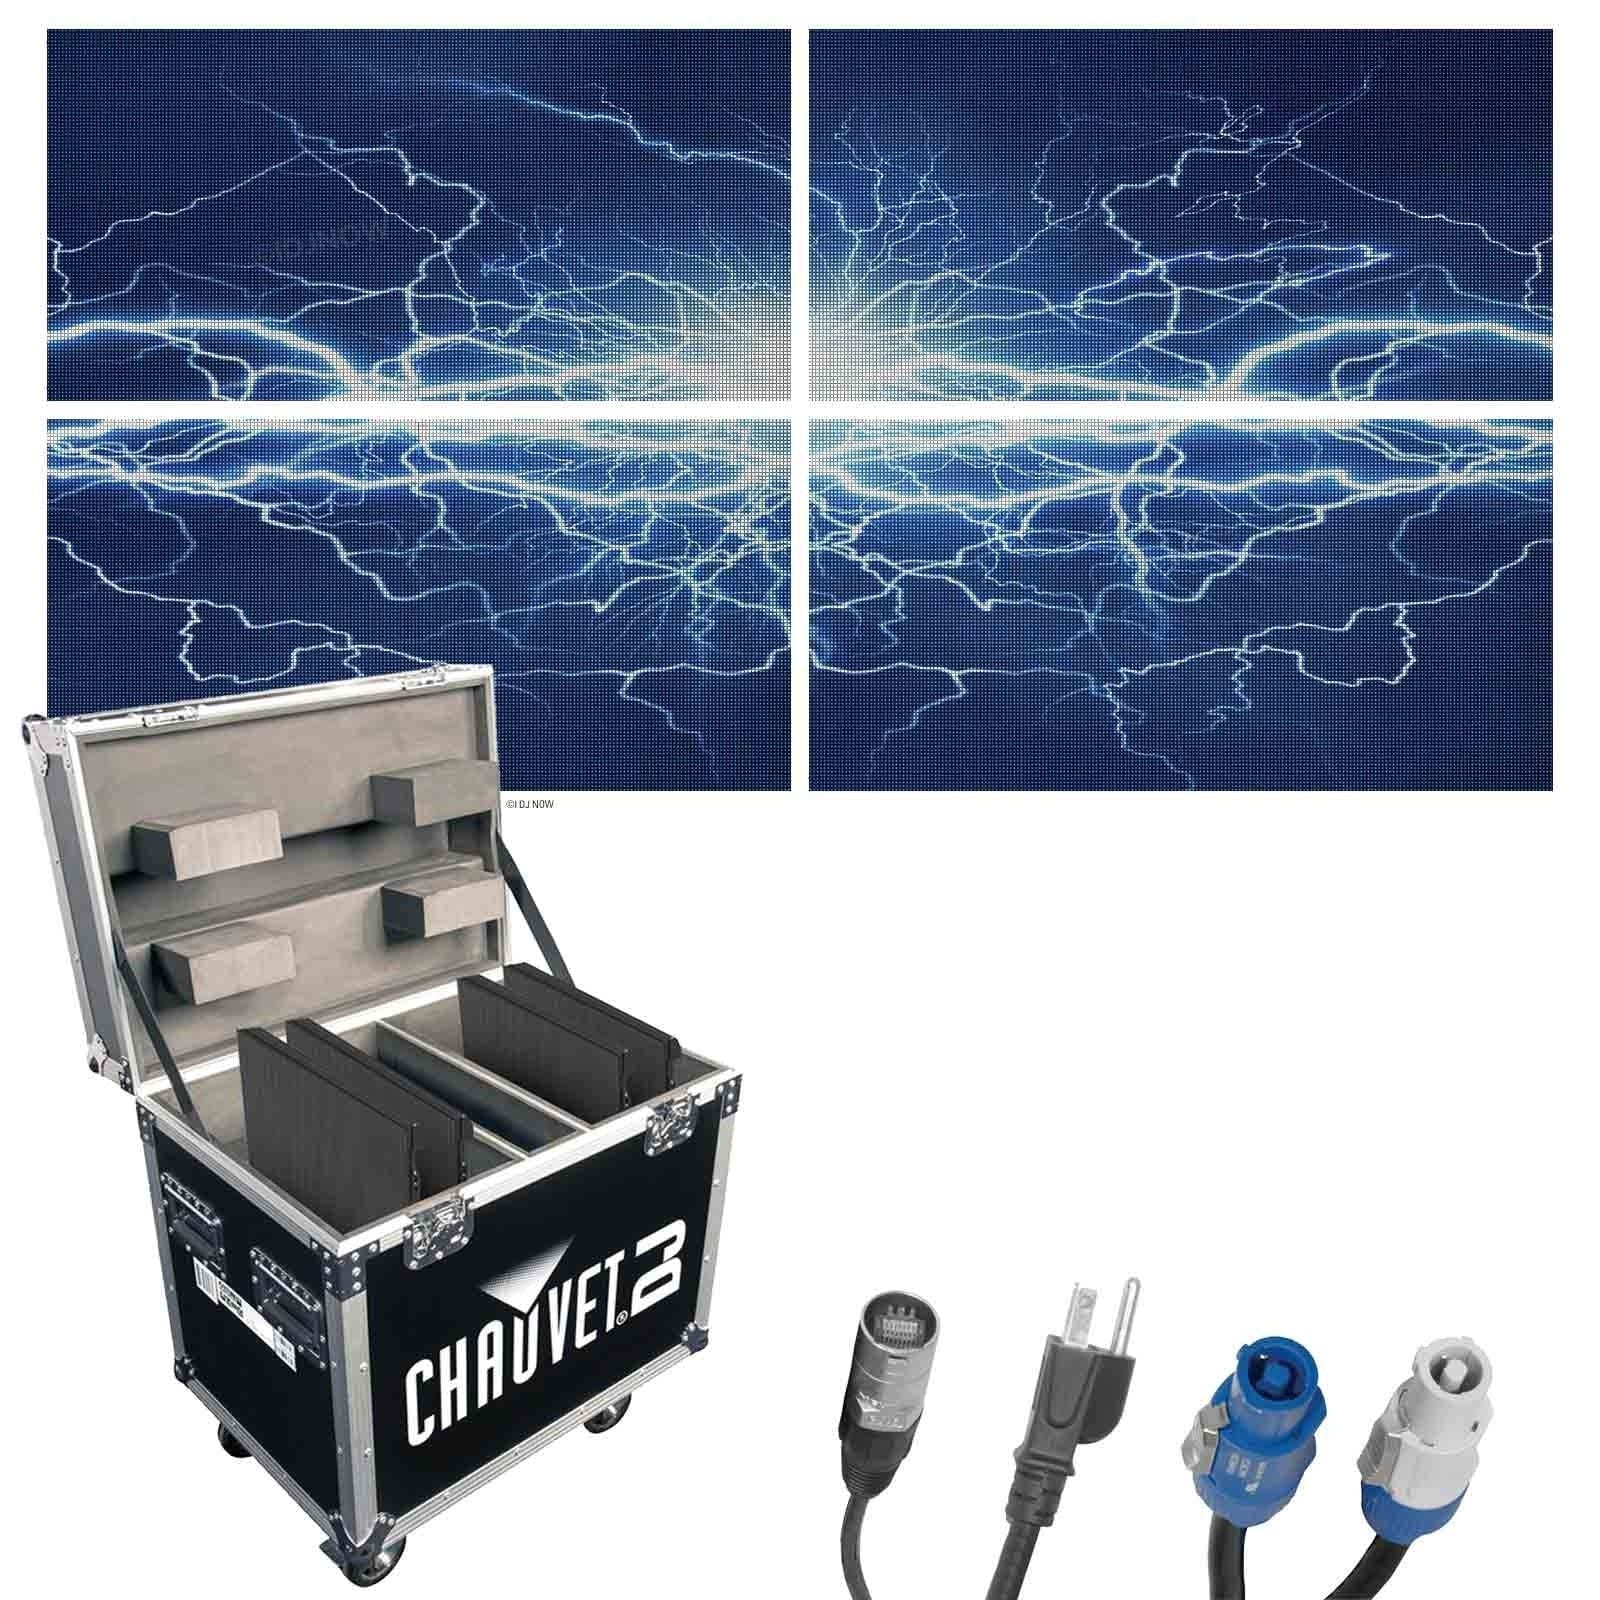 chauvet-dj-vivid-4x4-48mm-pixel-pitch-high-resolution-video-wall-package-includes-4-video-panels-all-cables-and-flight-case-d92